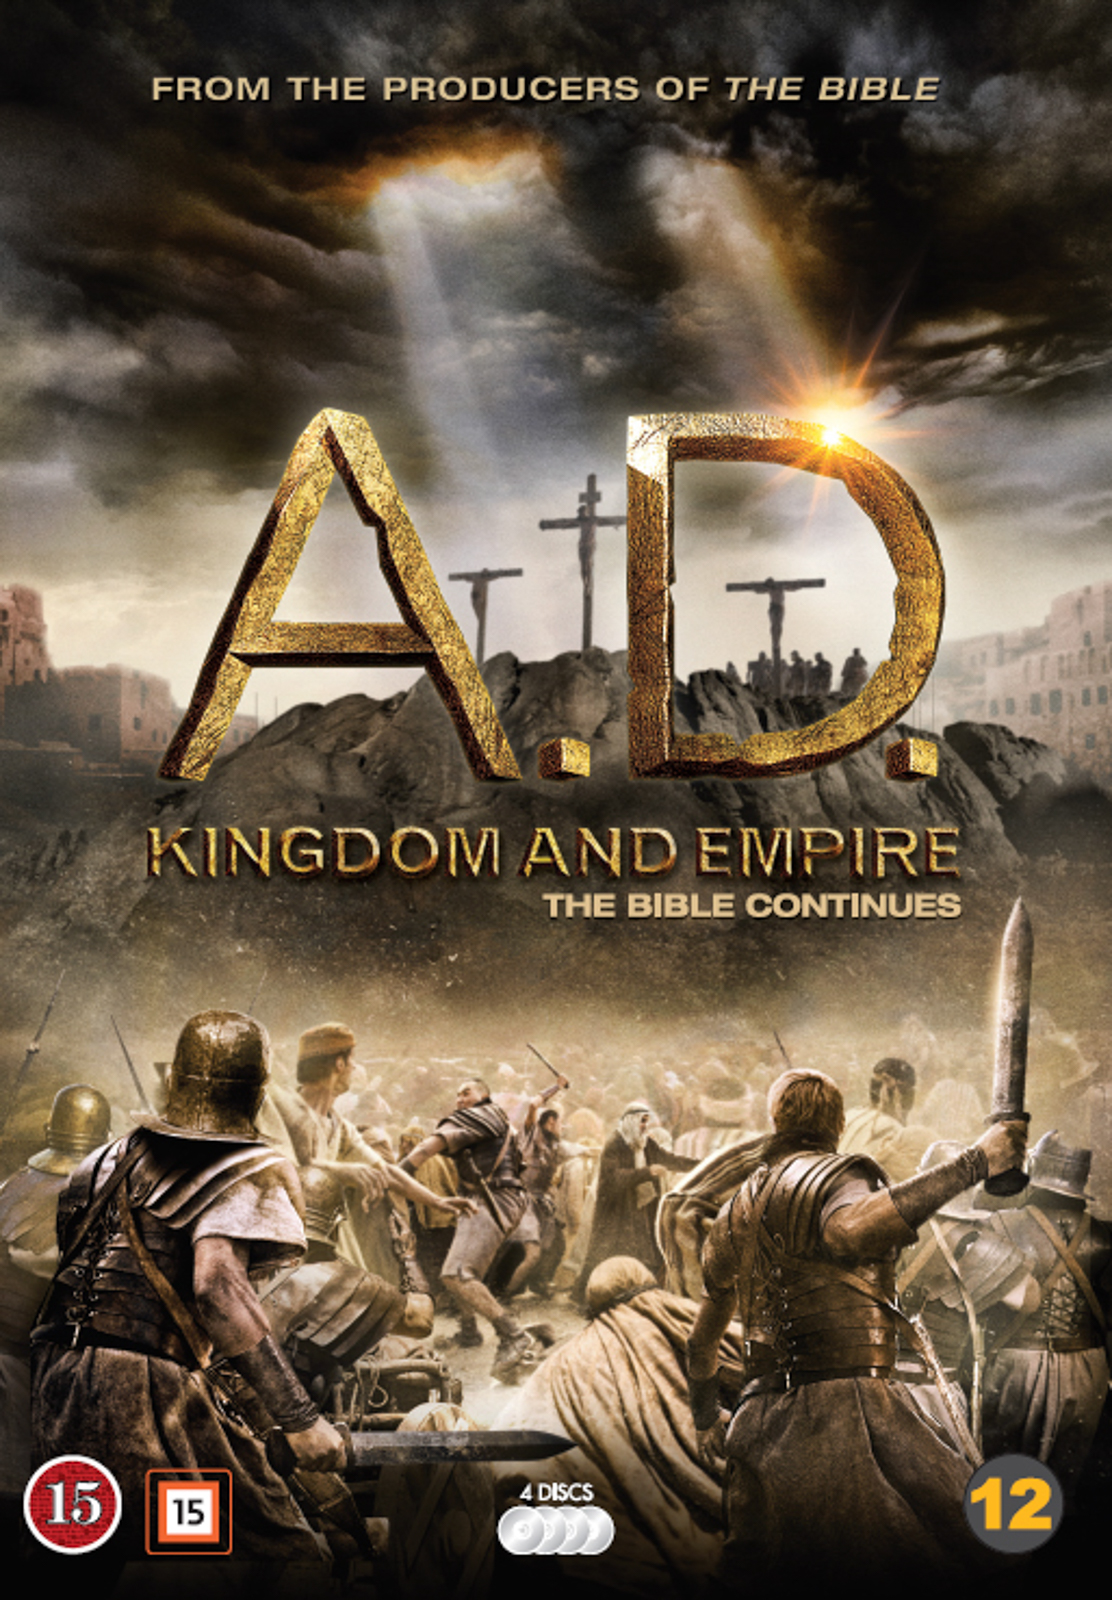 A.D. the Bible continues (2015) Book Cover